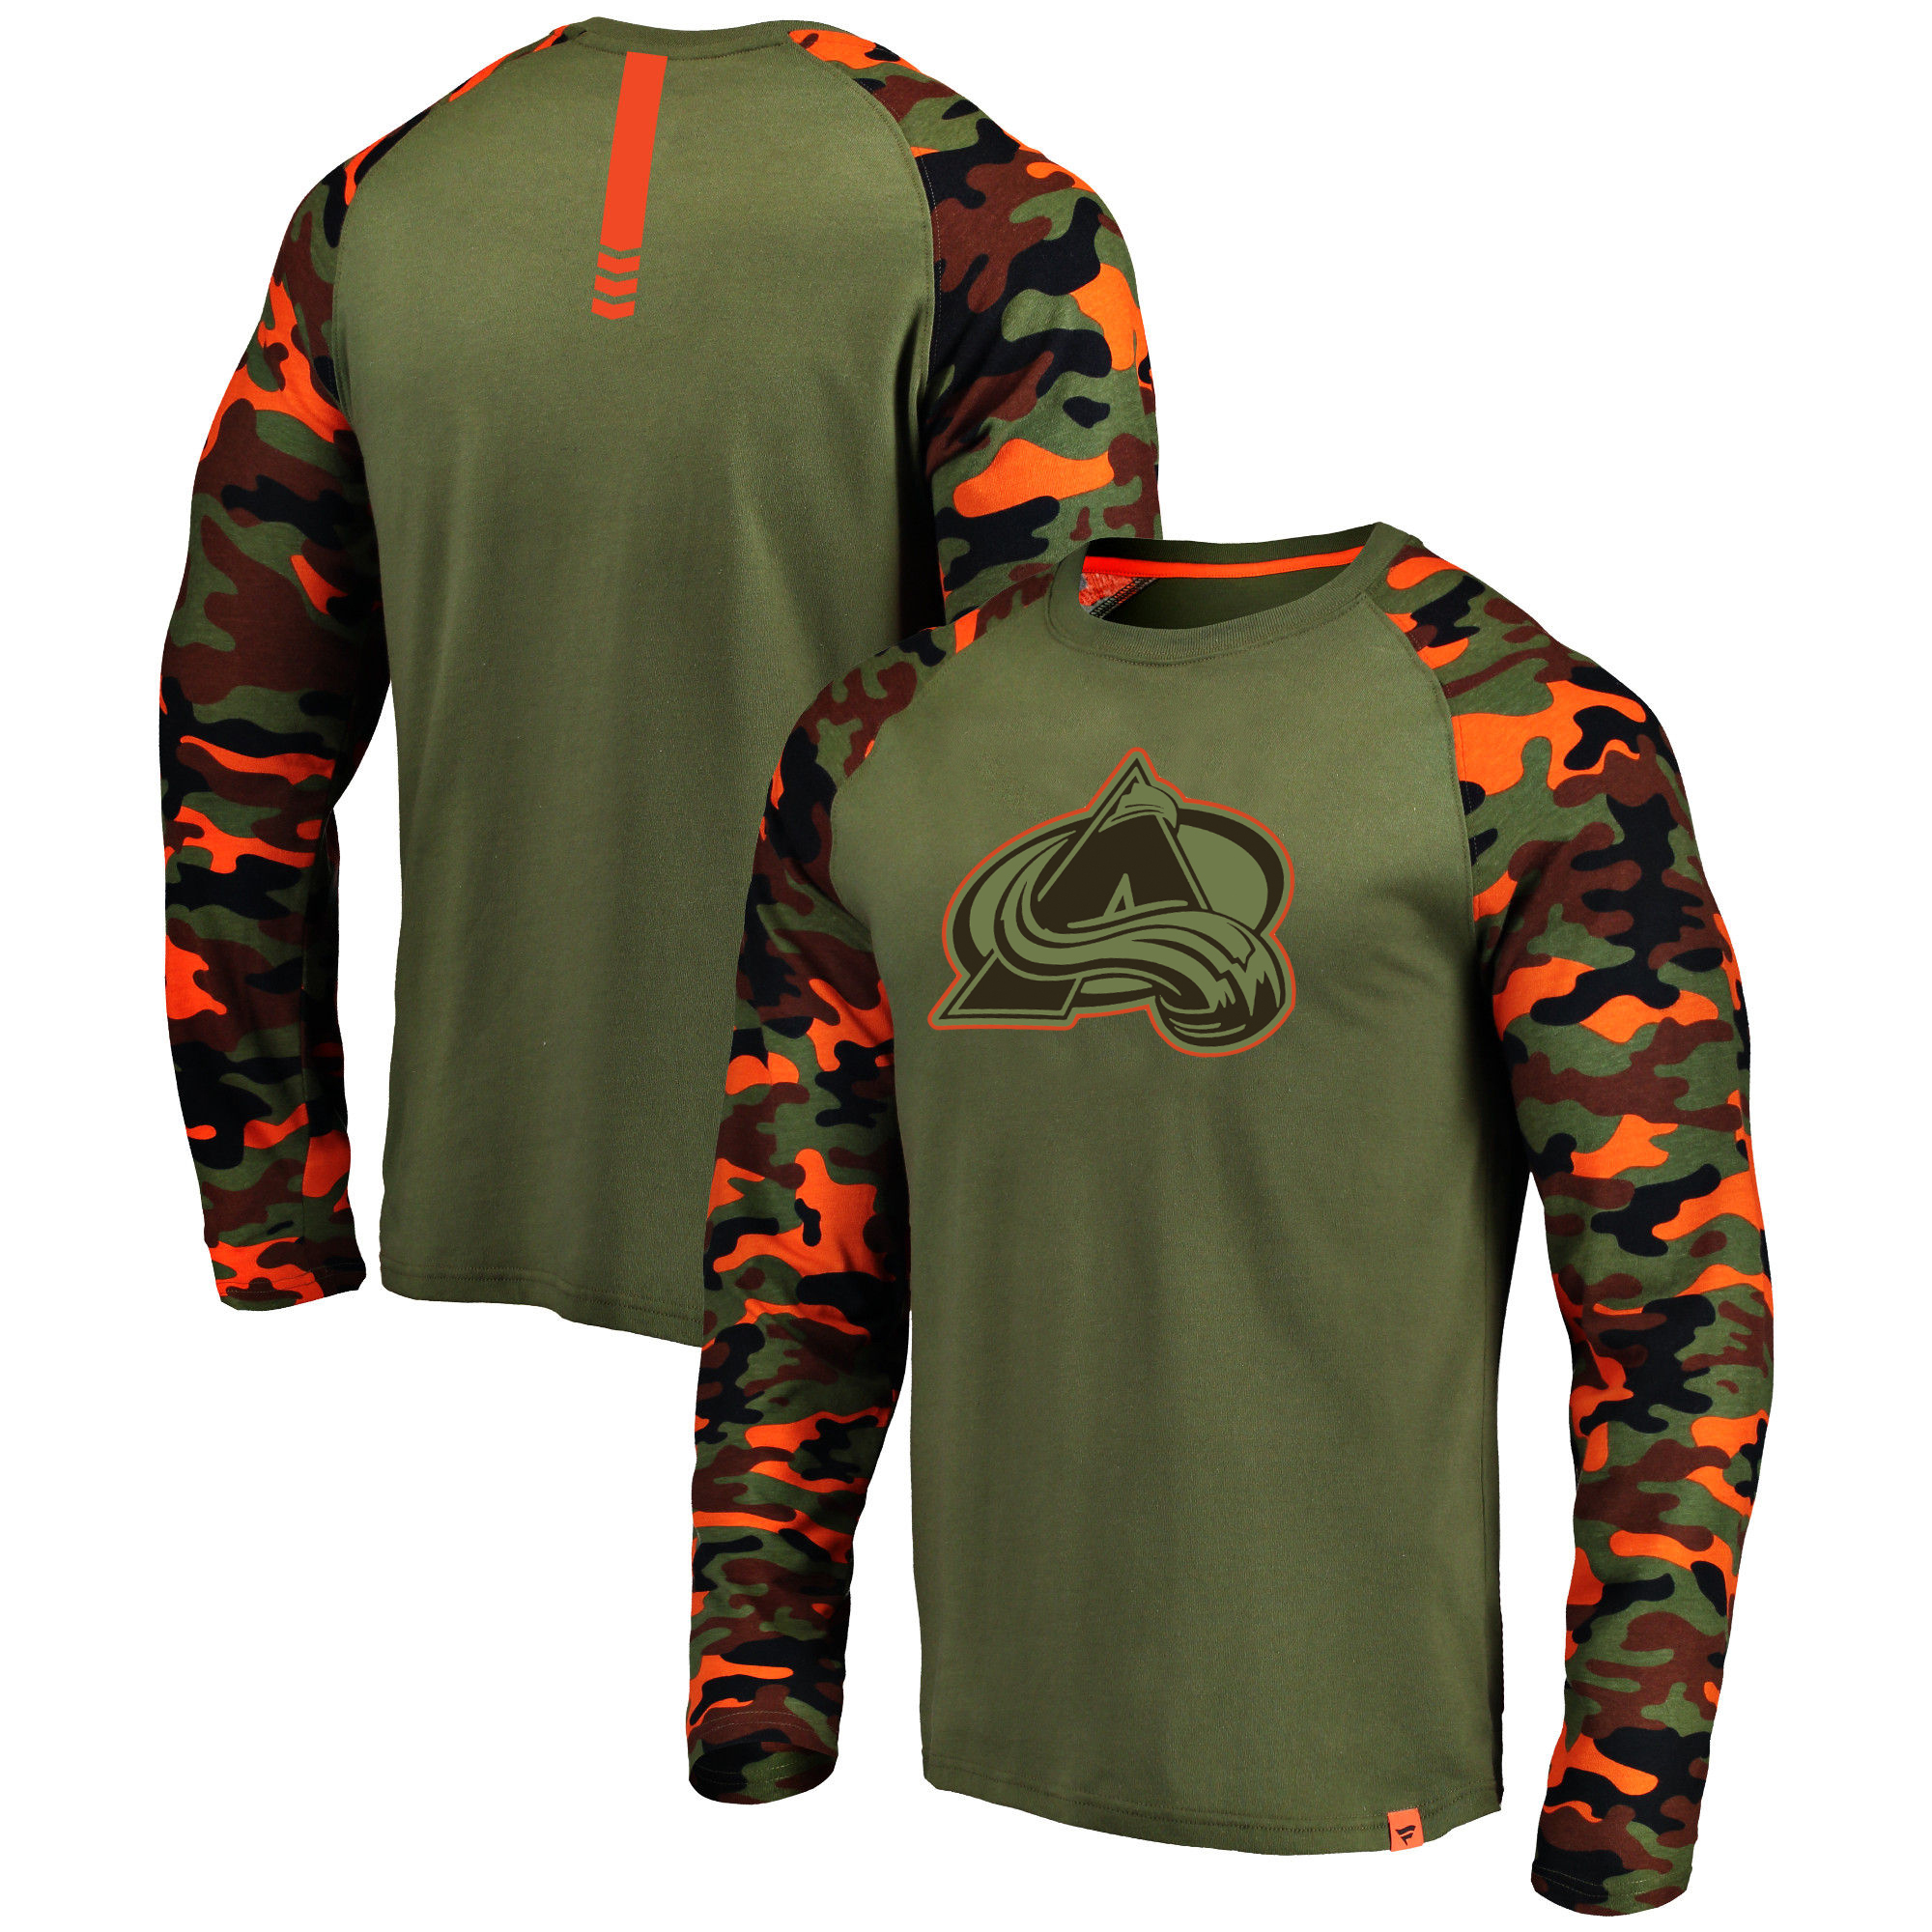 Colorado Avalanche Fanatics Branded Olive/Camo Recon Long Sleeve Raglan T-Shirt